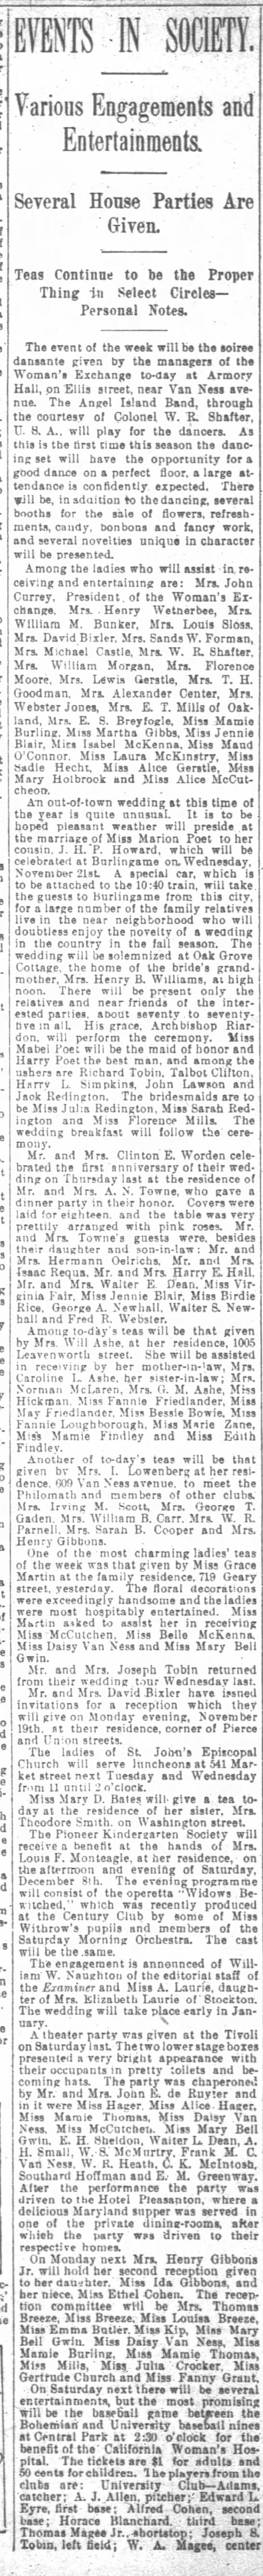 11/10/1894 - BCC Wedding Spcial Event - a a a - EVENTS - IN Various Engagements and...